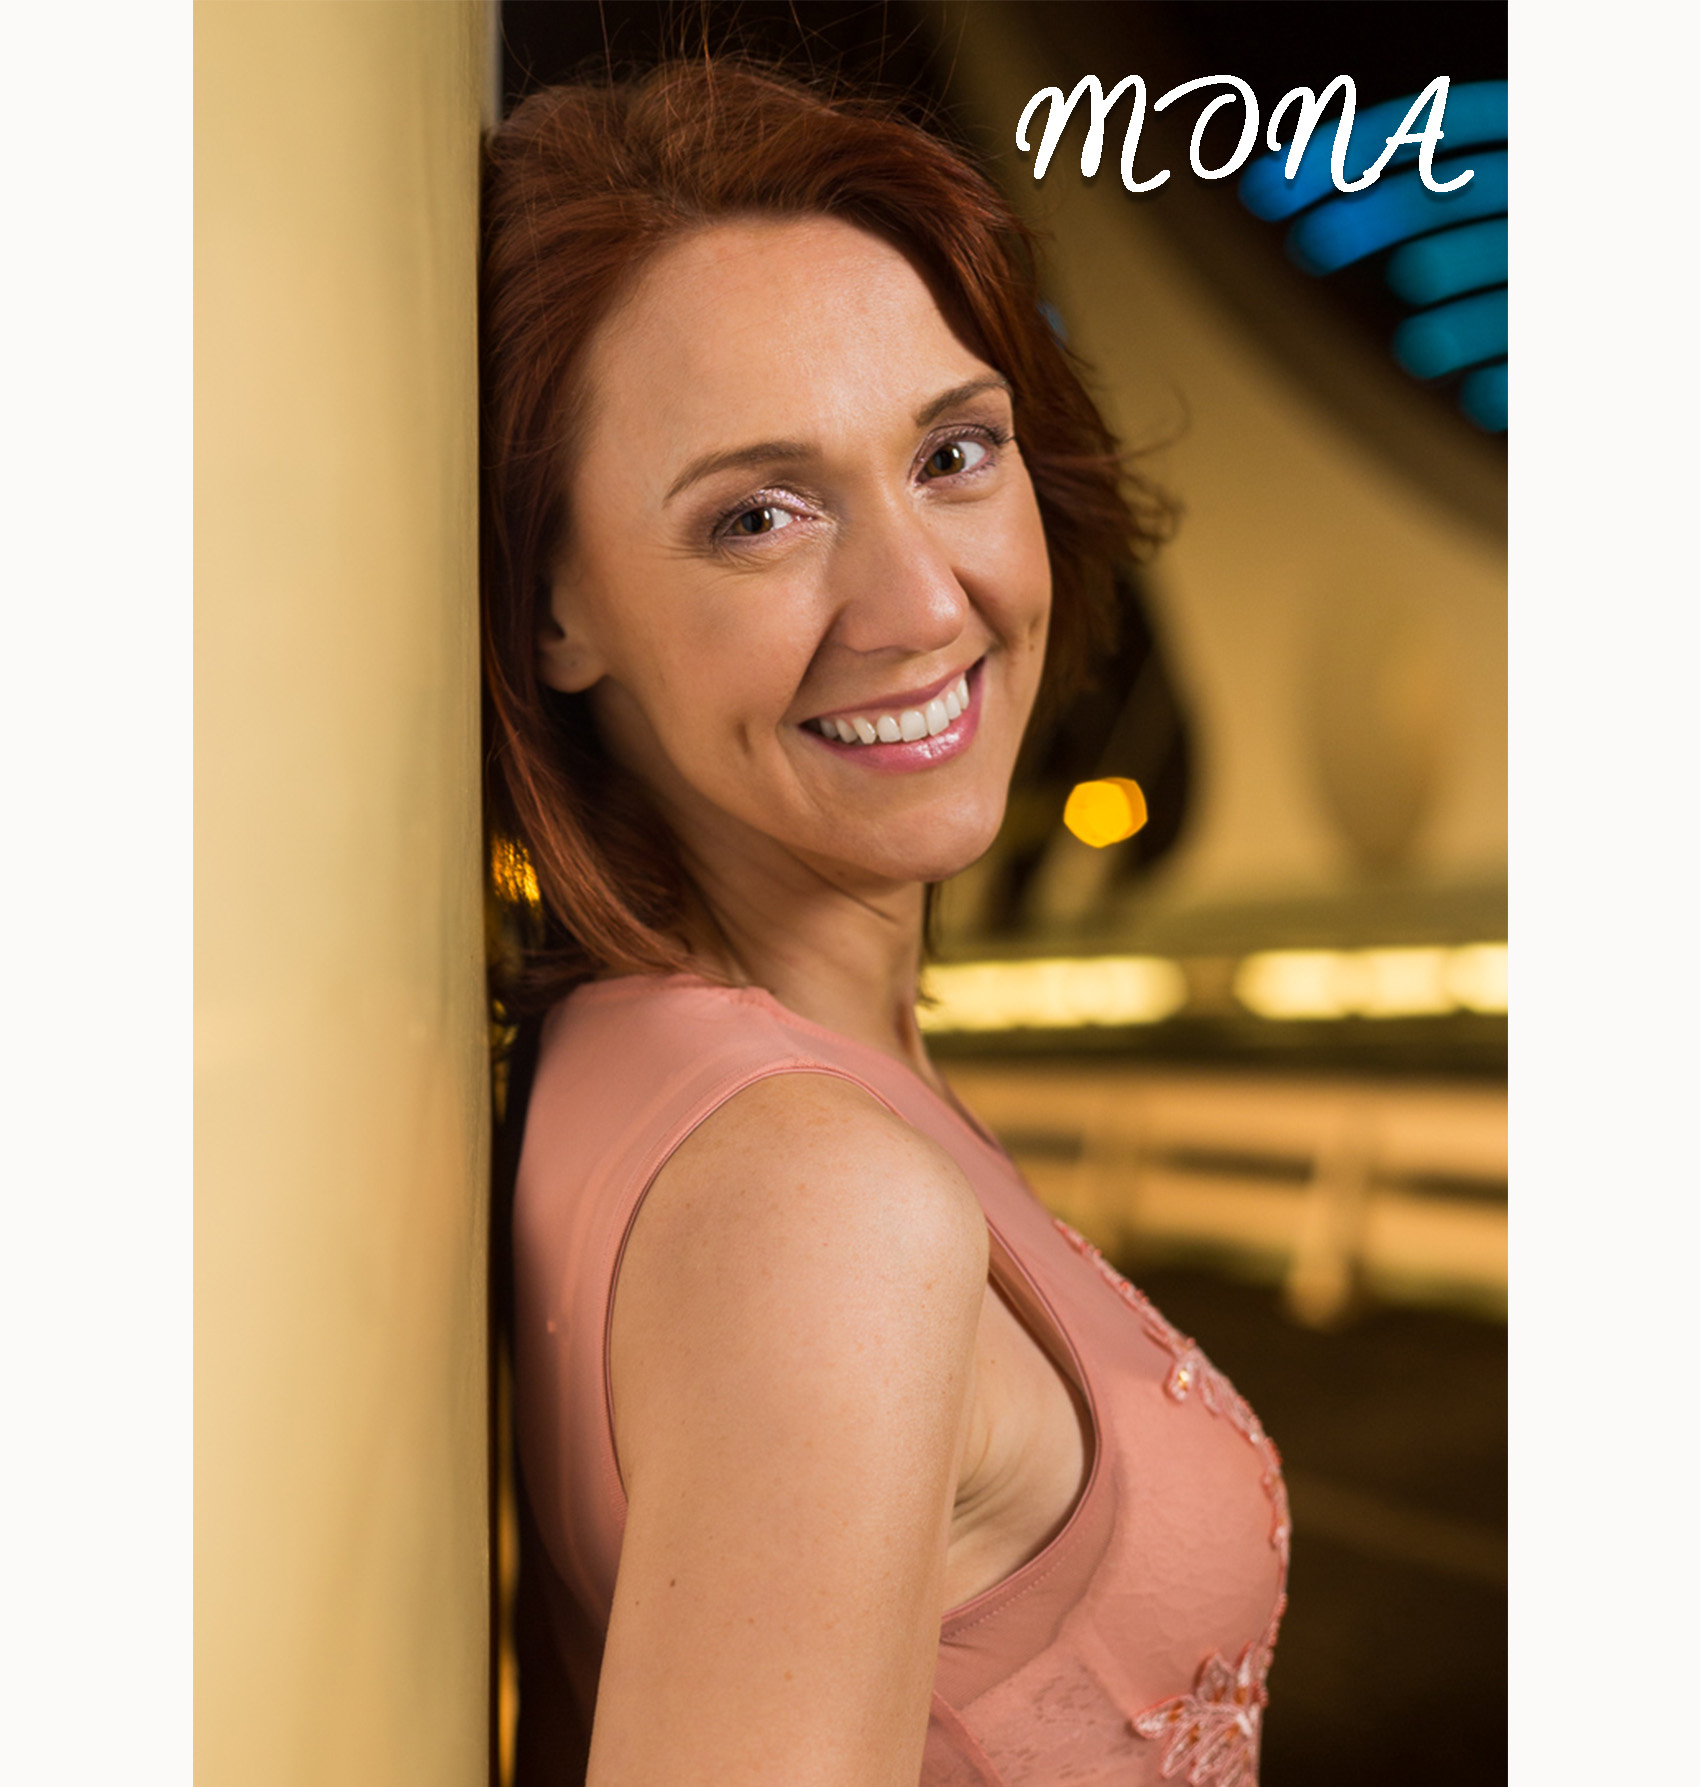 IRELAND  Mona is a recognized and passionate Brazilian Zouk dancer and teacher living in Dublin. She began to dance at the age of four, with a background in traditional Irish dancing and ballroom including jive, foxtrot and waltz.  Today she continues to improve her dance technique and teaching skills through her ongoing training in Ballet, Contemporary & Brazilian Zouk. She has recently just returned from Brazil where she studied with Renata Pecana, Jaime Aroxa, Paloma Alves and other Brazilian Zouk professionals.  Since discovering Brazilian Zouk, Mona has developed her own unique teaching methodology drawing on elements from her own life experience alongside her knowledge as a Life Coach. She believes in the transforming power of dance using energy healing through biomechanics.  Where to find me?   www.zouk-ireland.com